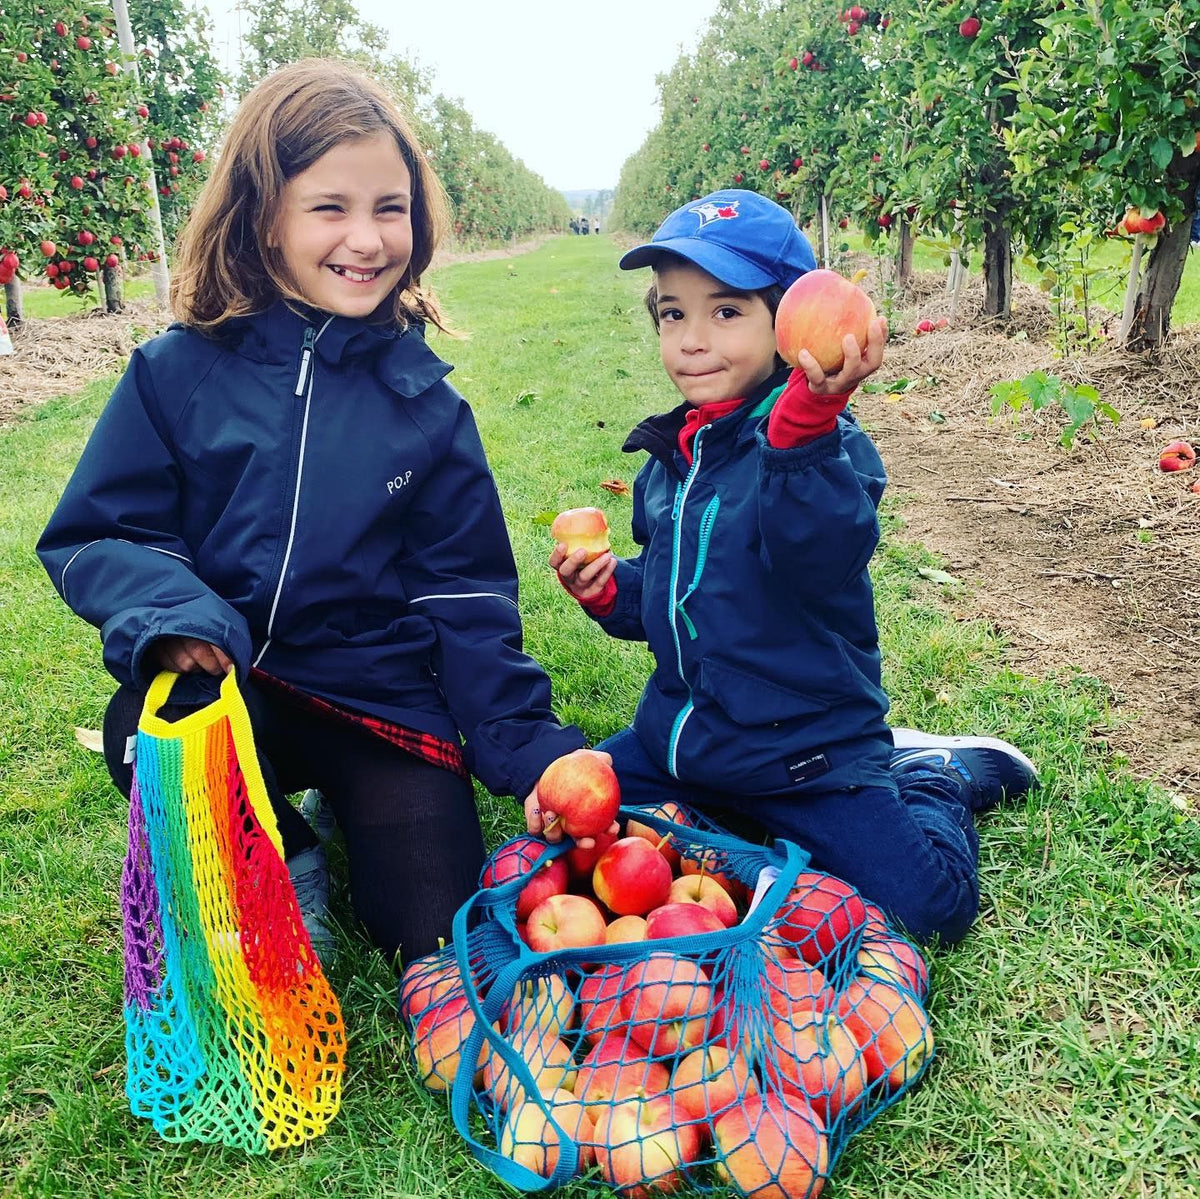 Kids picking apples with Filt net bags